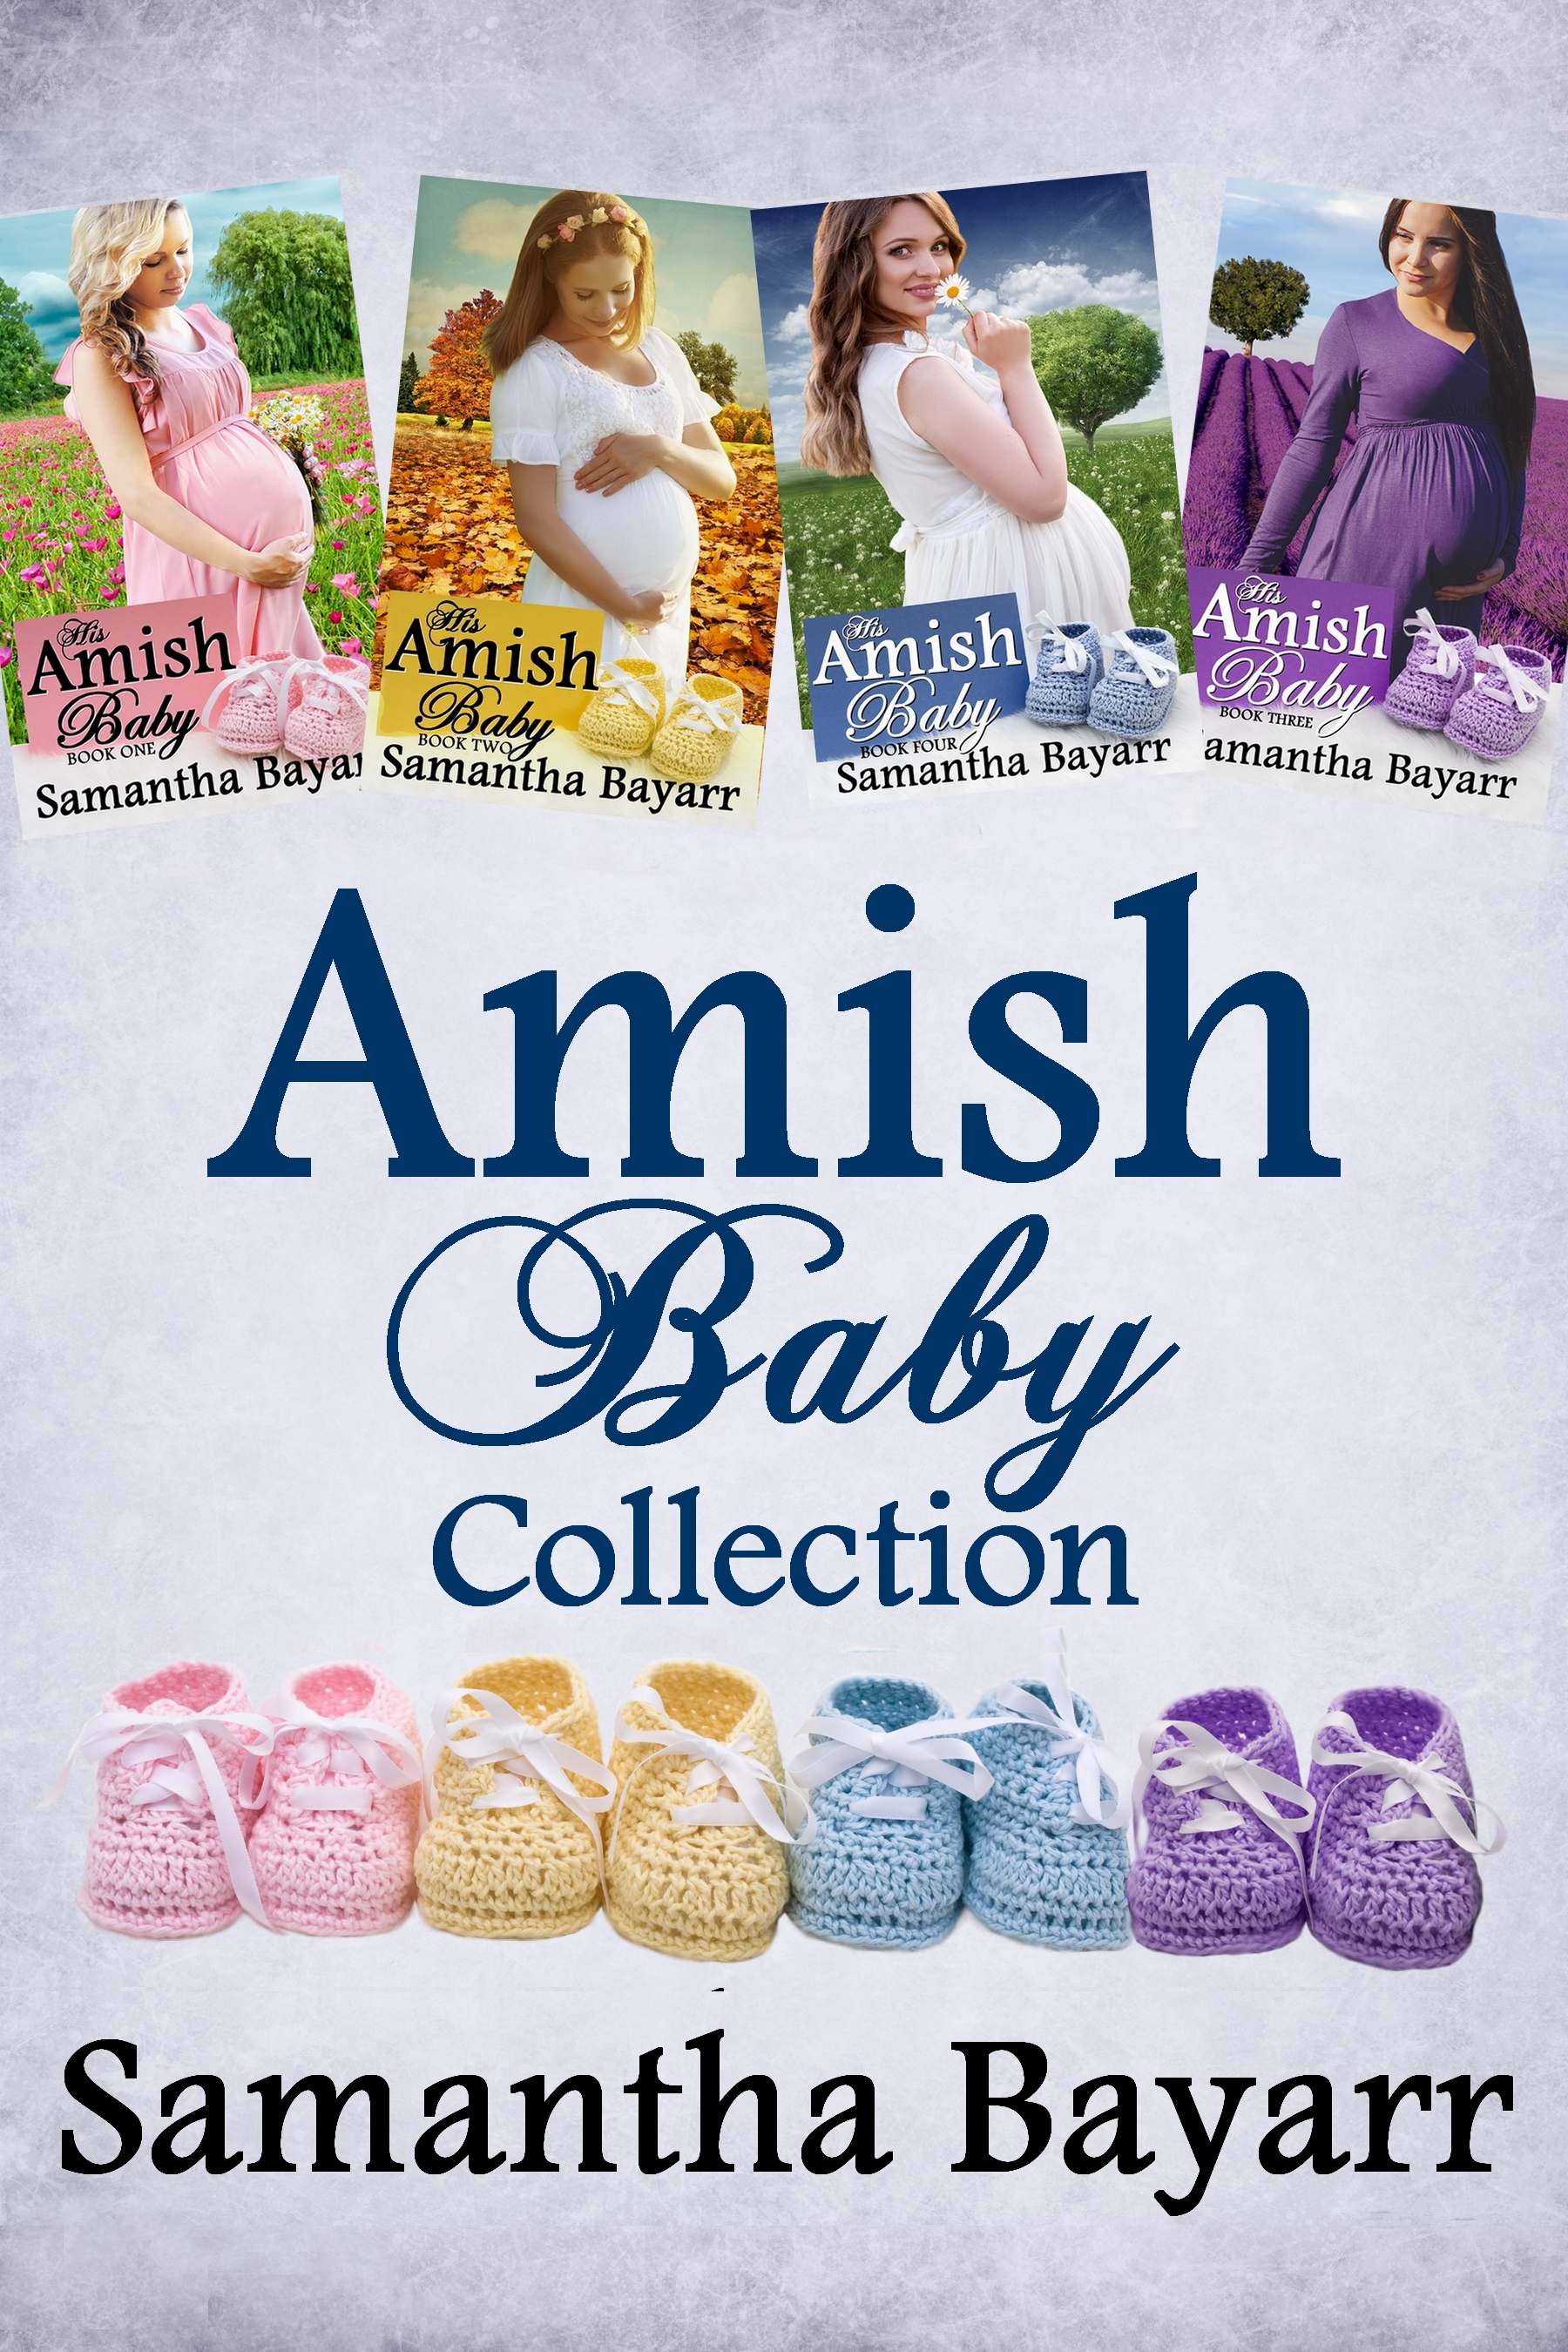 000 Amish Baby Collection 6X9